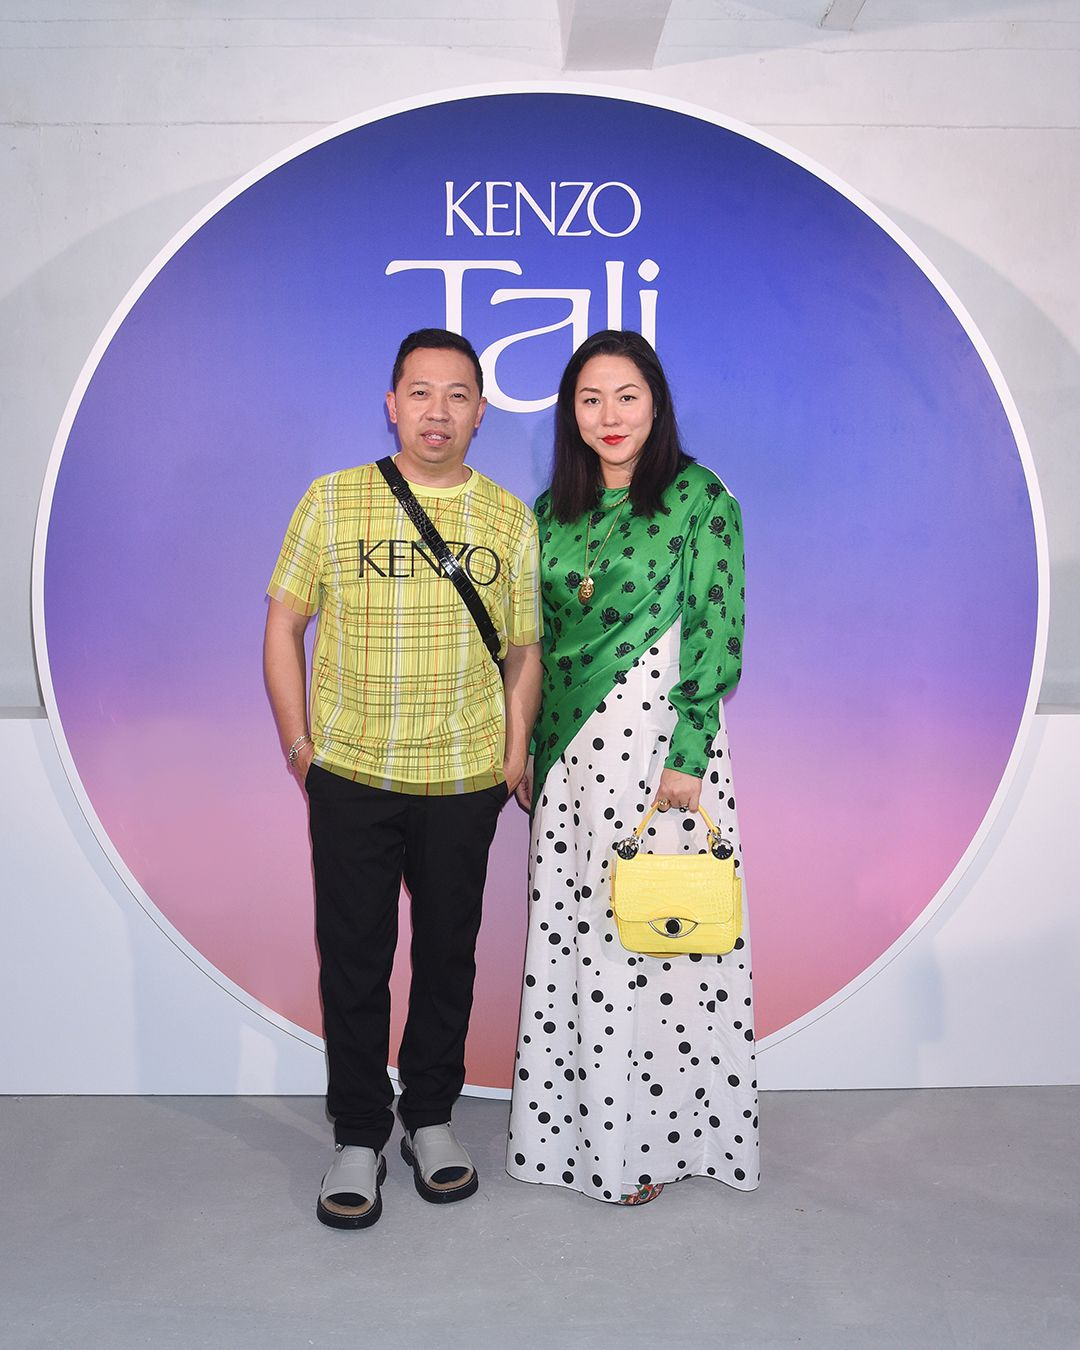 Talking Fashion With... Carol Lim And Humberto Leon Of Kenzo